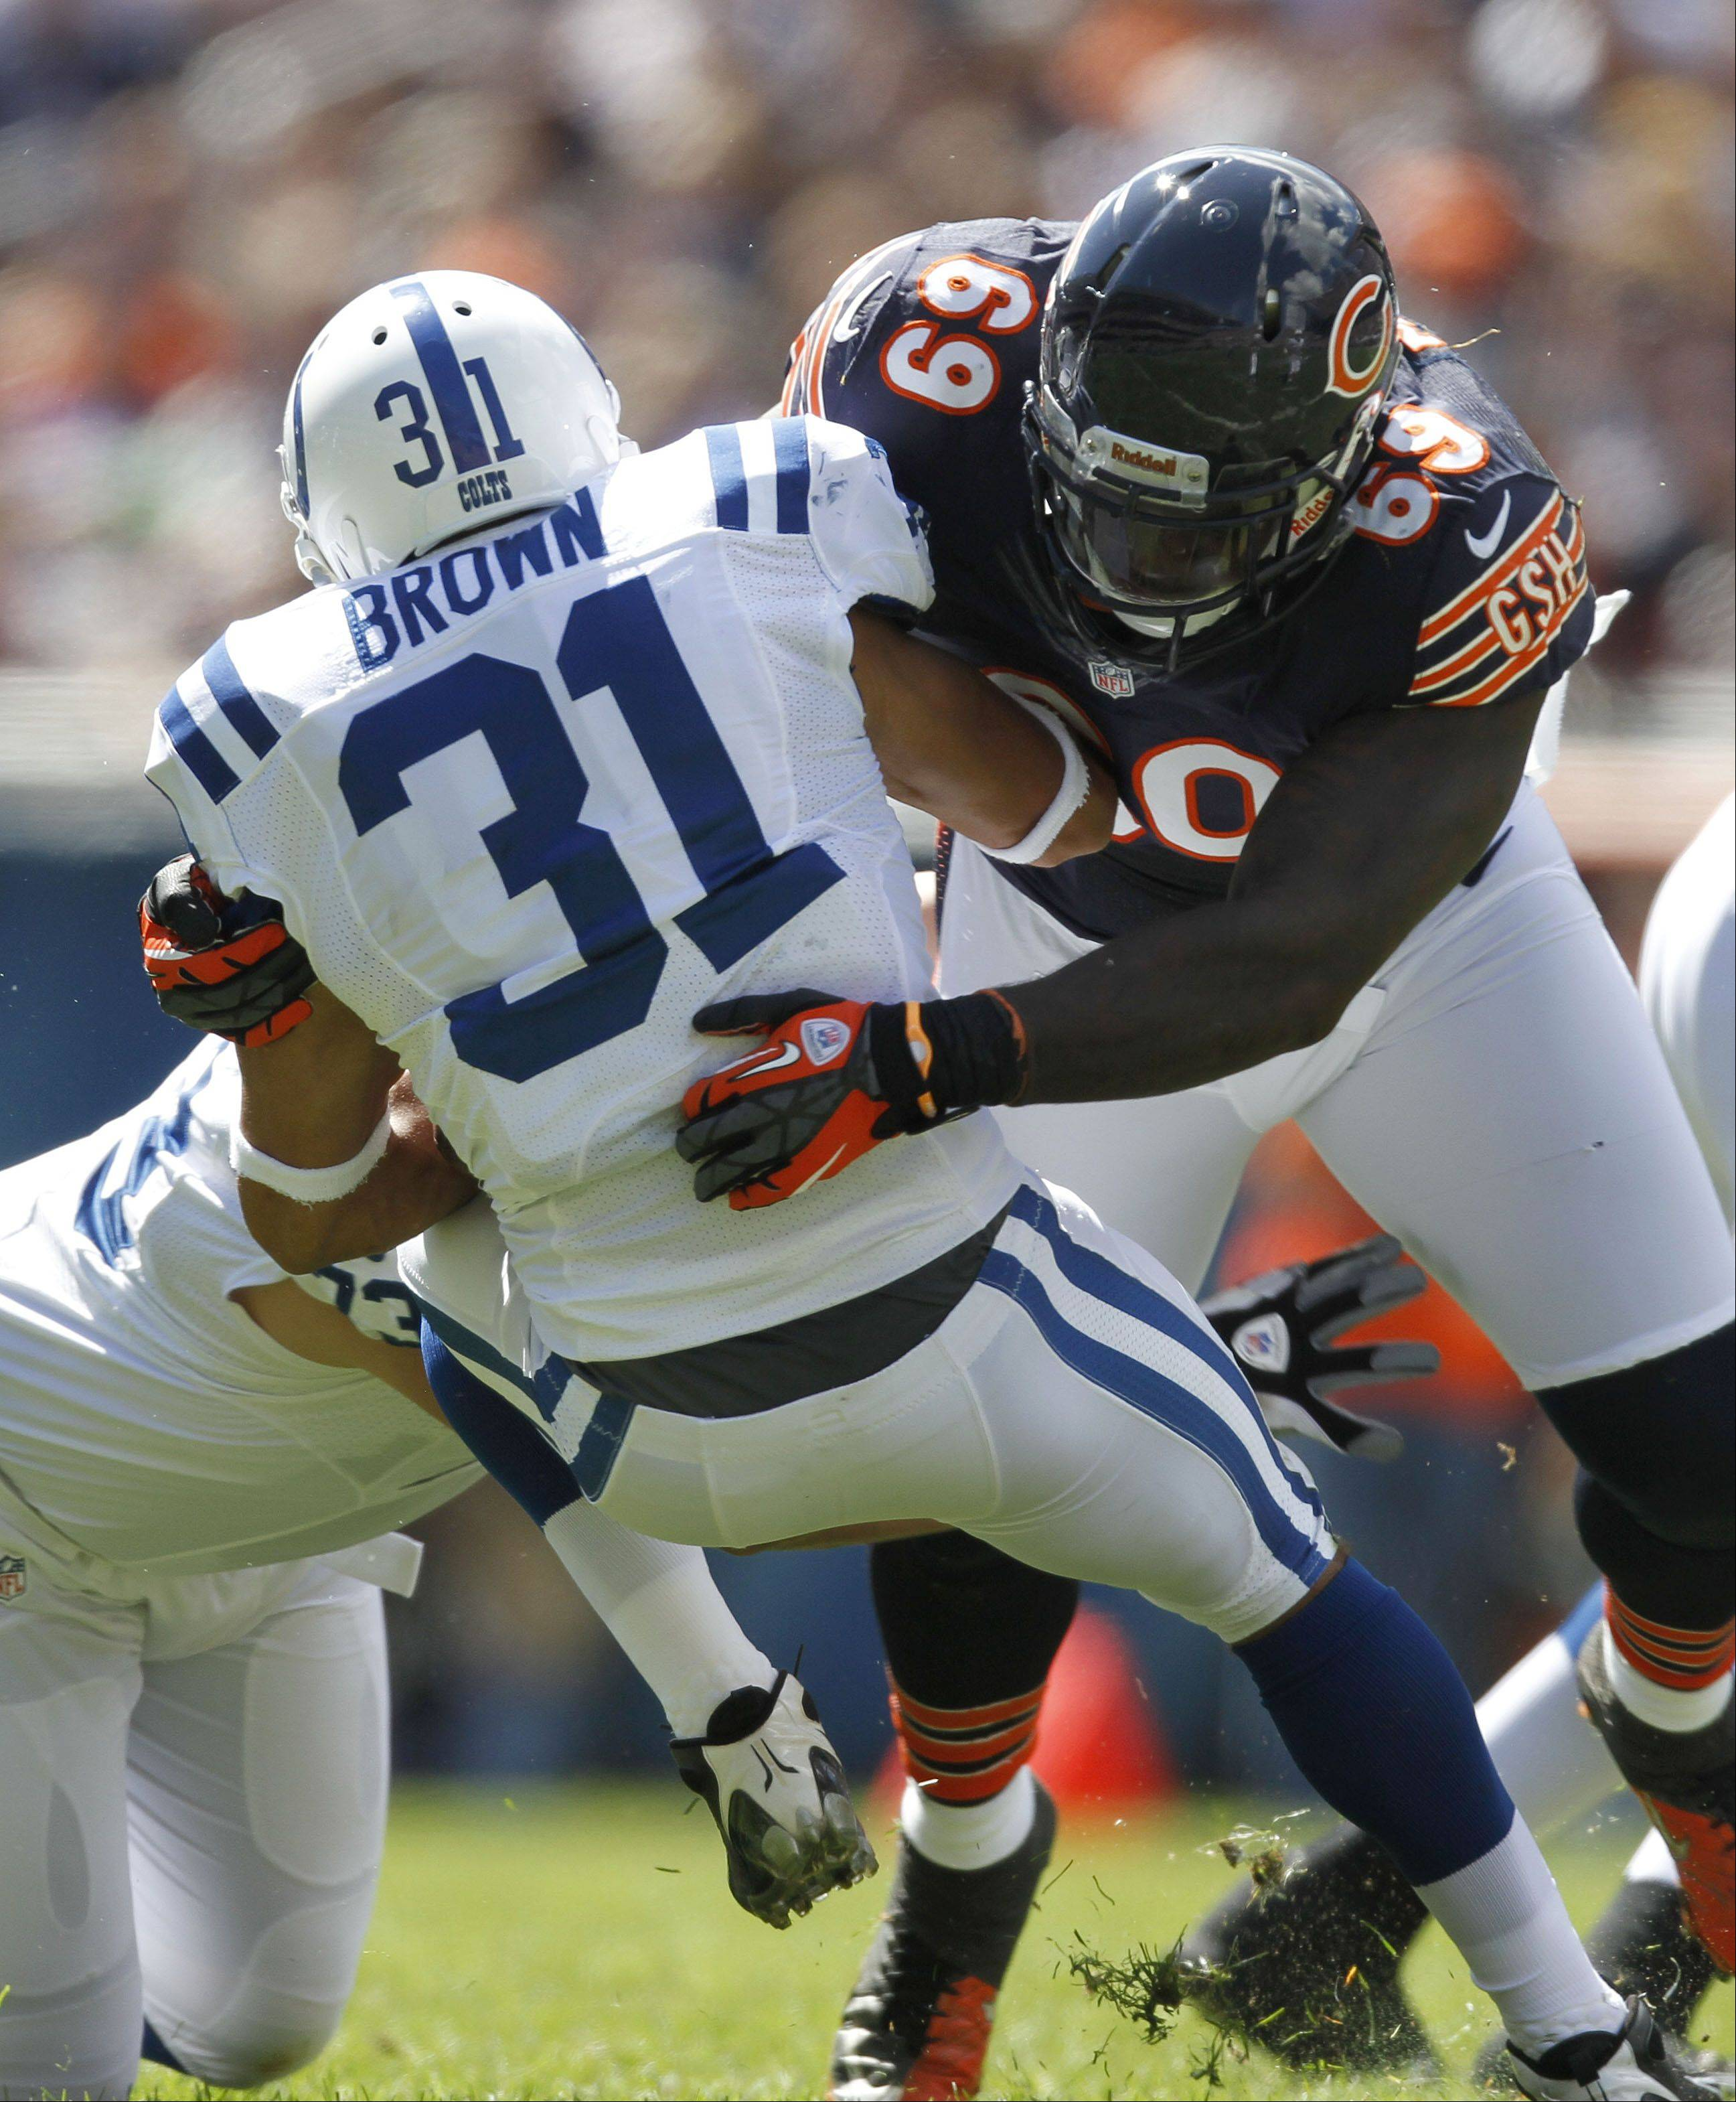 Chicago Bears defensive end Henry Melton hits Indianapolis Colts running back Donald Brown for a loss during the Bears season opener.